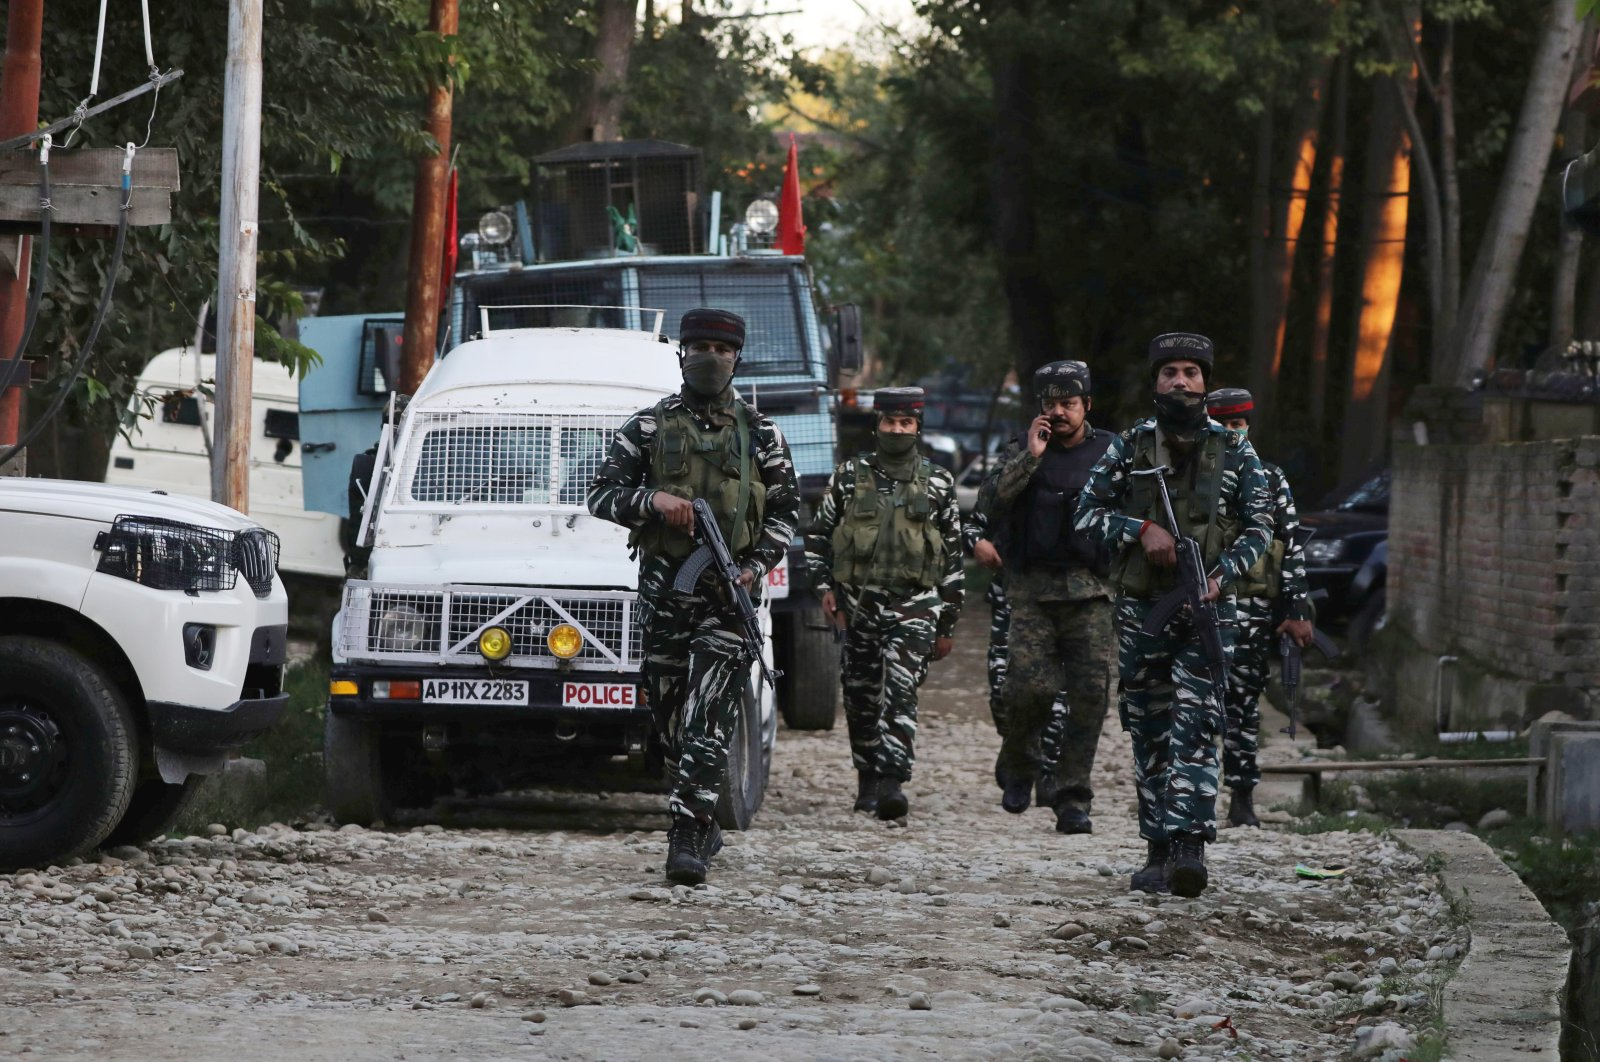 Indian security personnel walk near the site of a gunfight in a village in Kawoosa area of central Kashmir's Budgam district, some 20 kilometers from Srinagar, the summer capital of Indian Kashmir, Sept. 7, 2020. (EPA Photo)